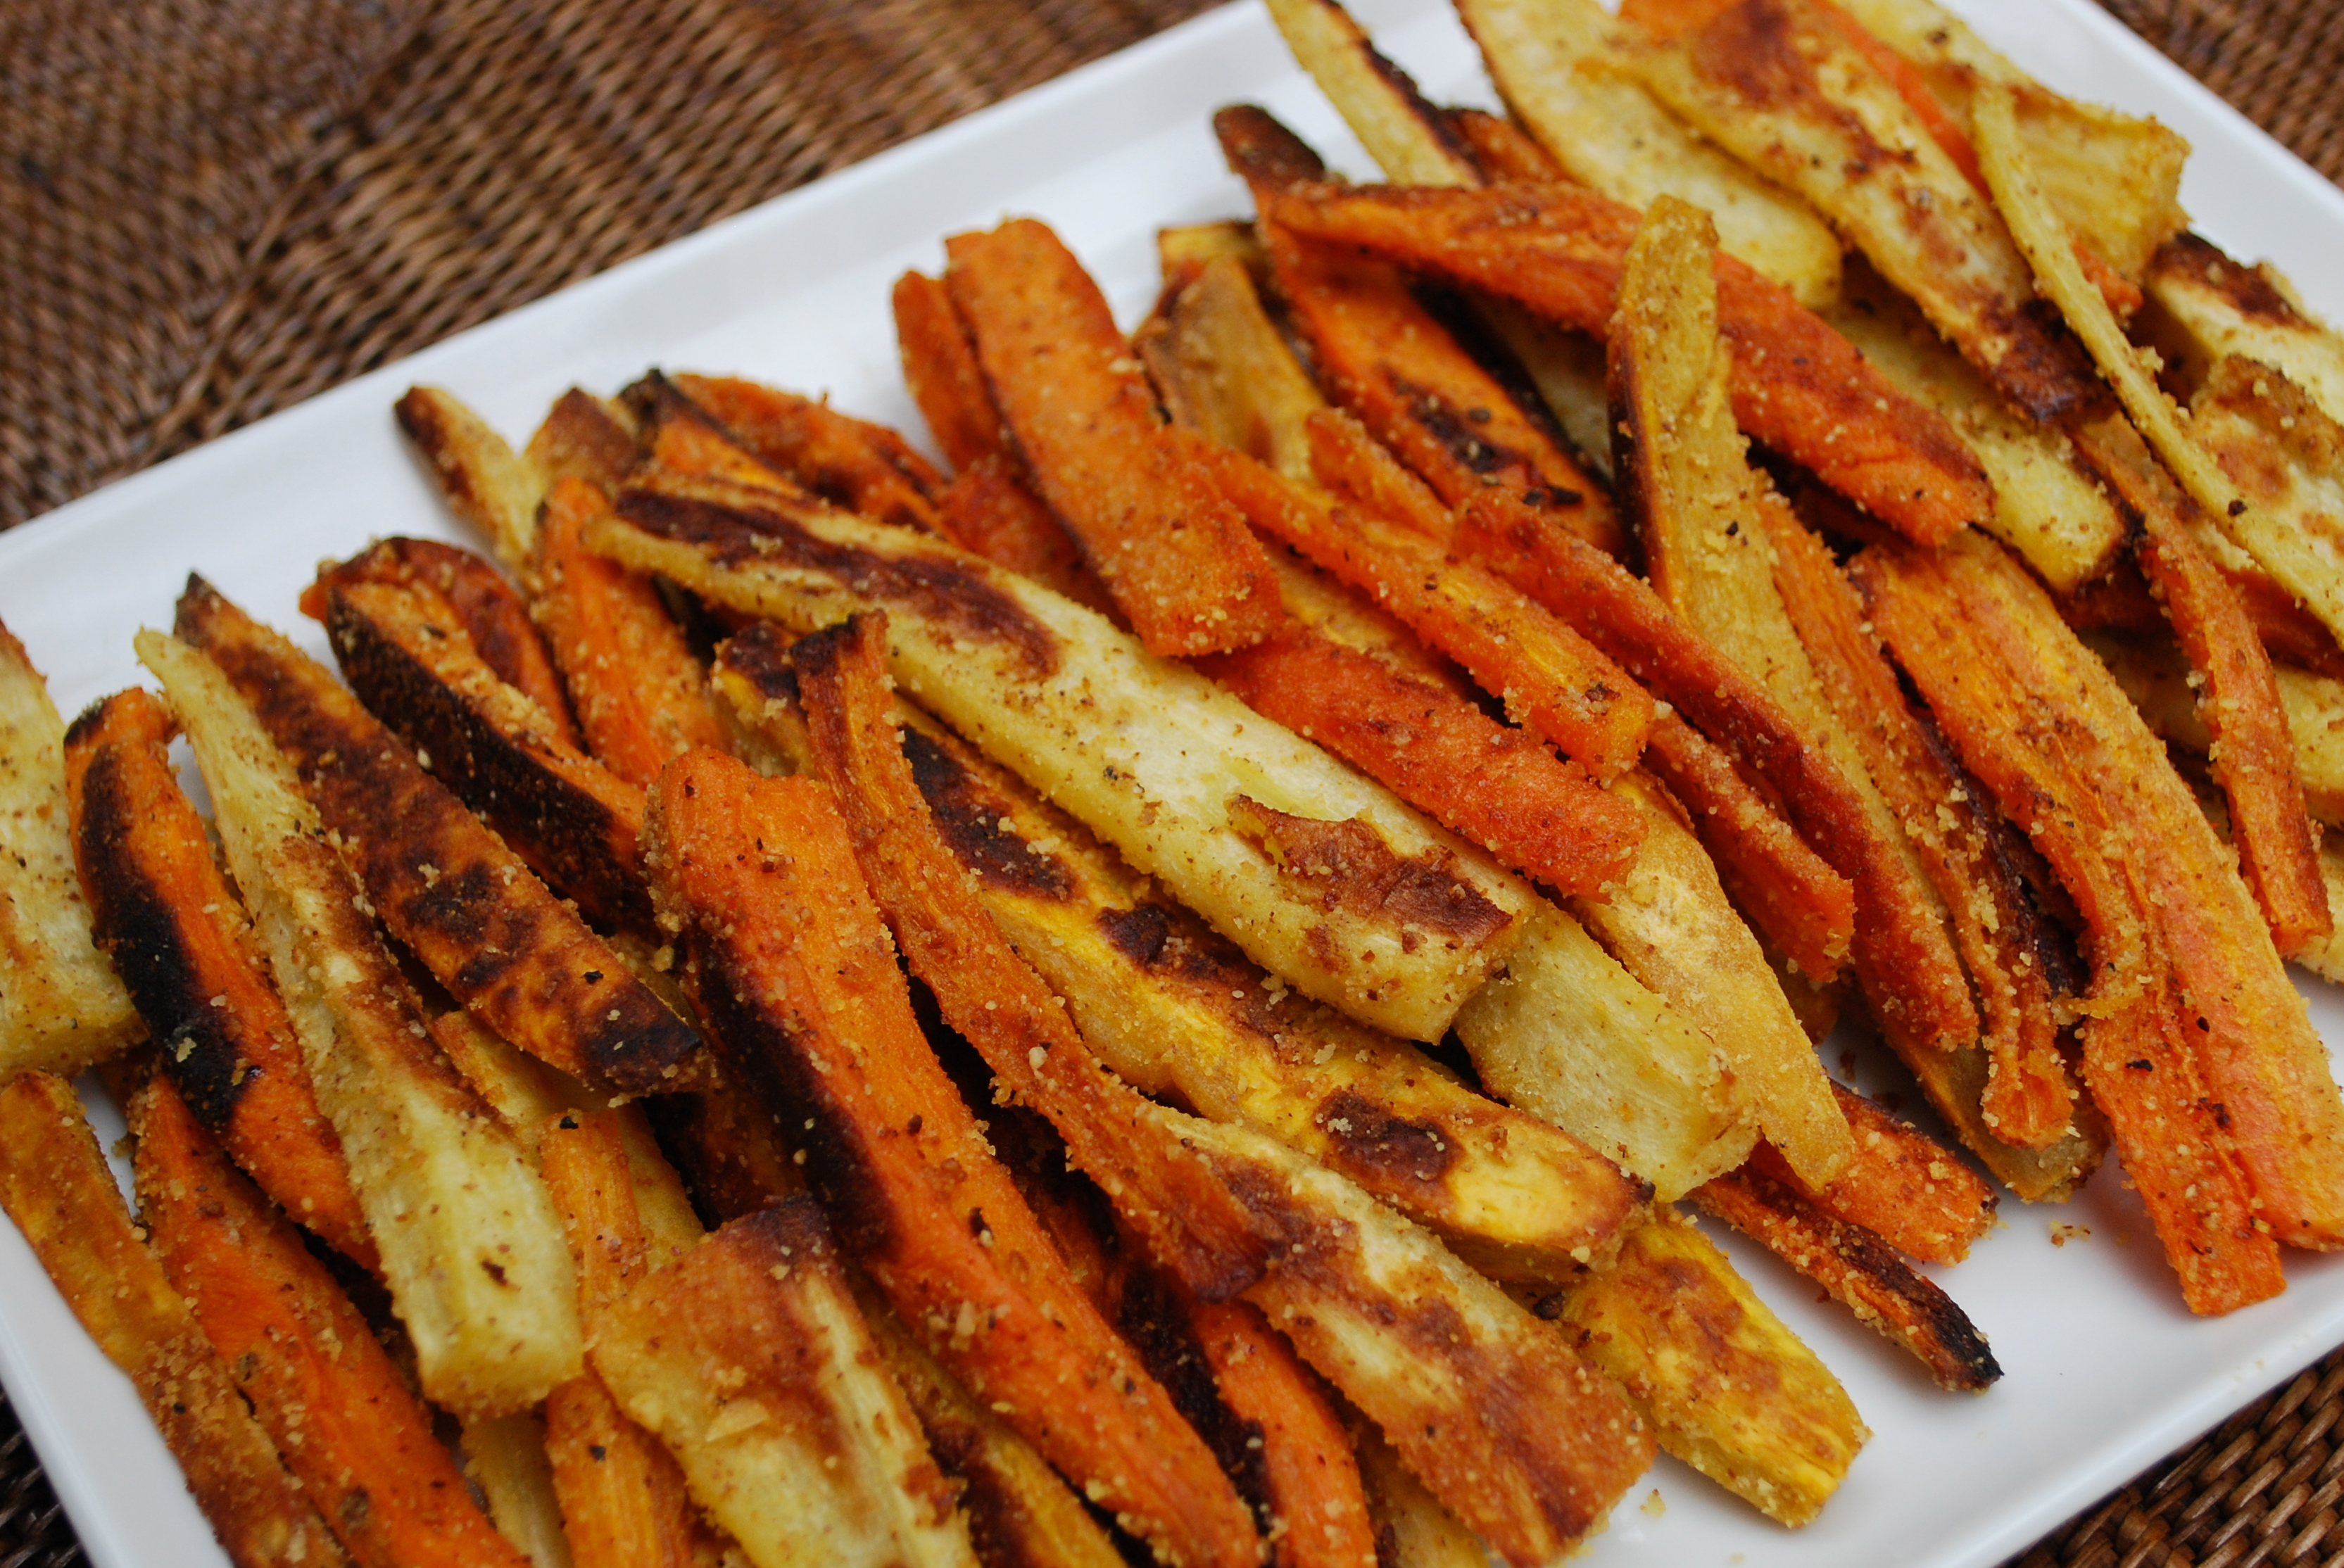 Baked Vegetable Fries | Time to Cook!